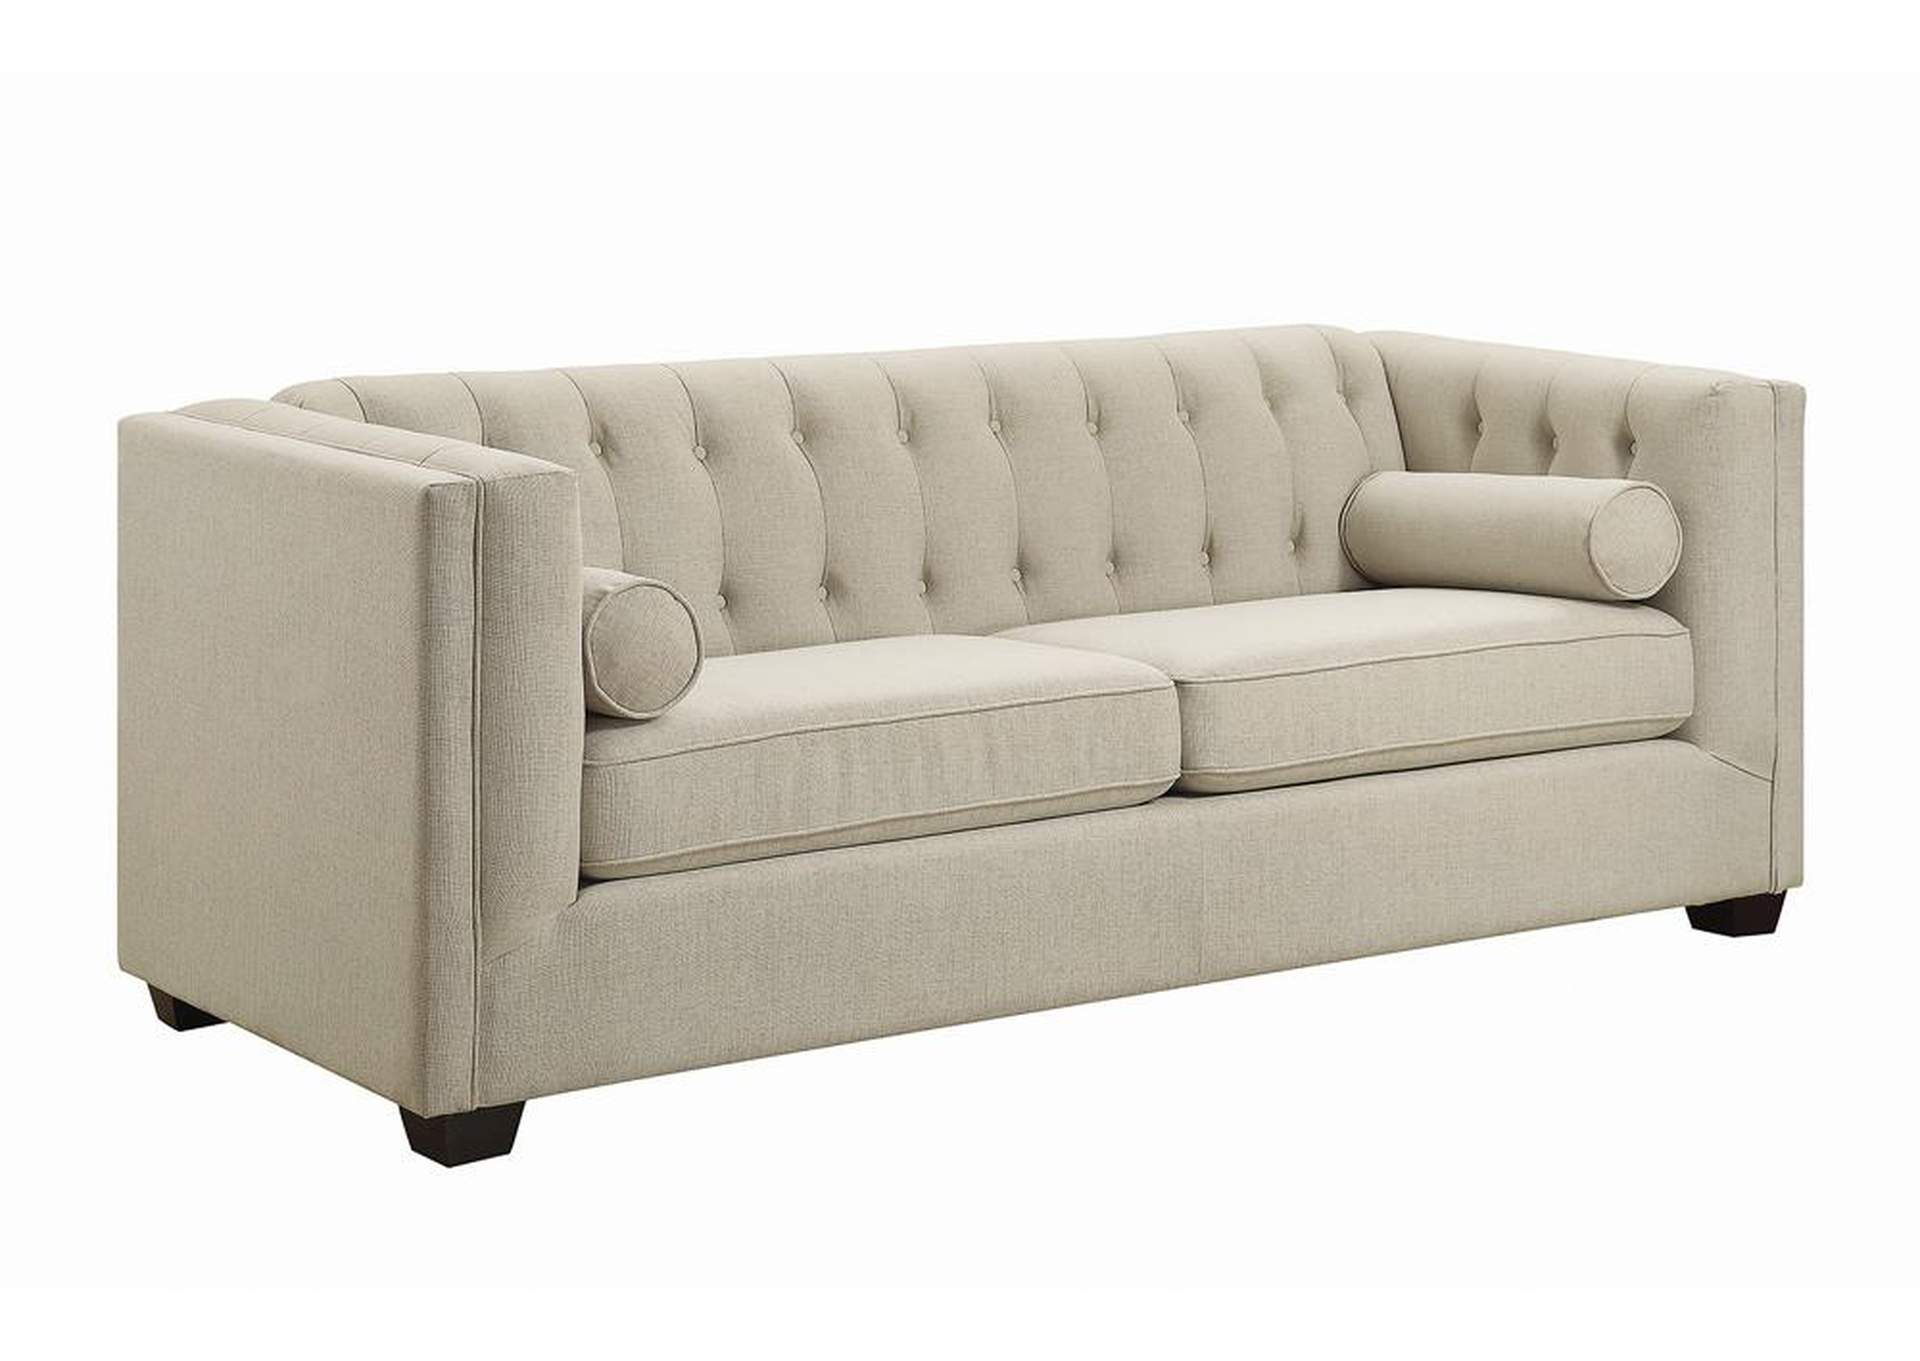 Brown Cairns Transitional Oatmeal Sofa,Coaster Furniture